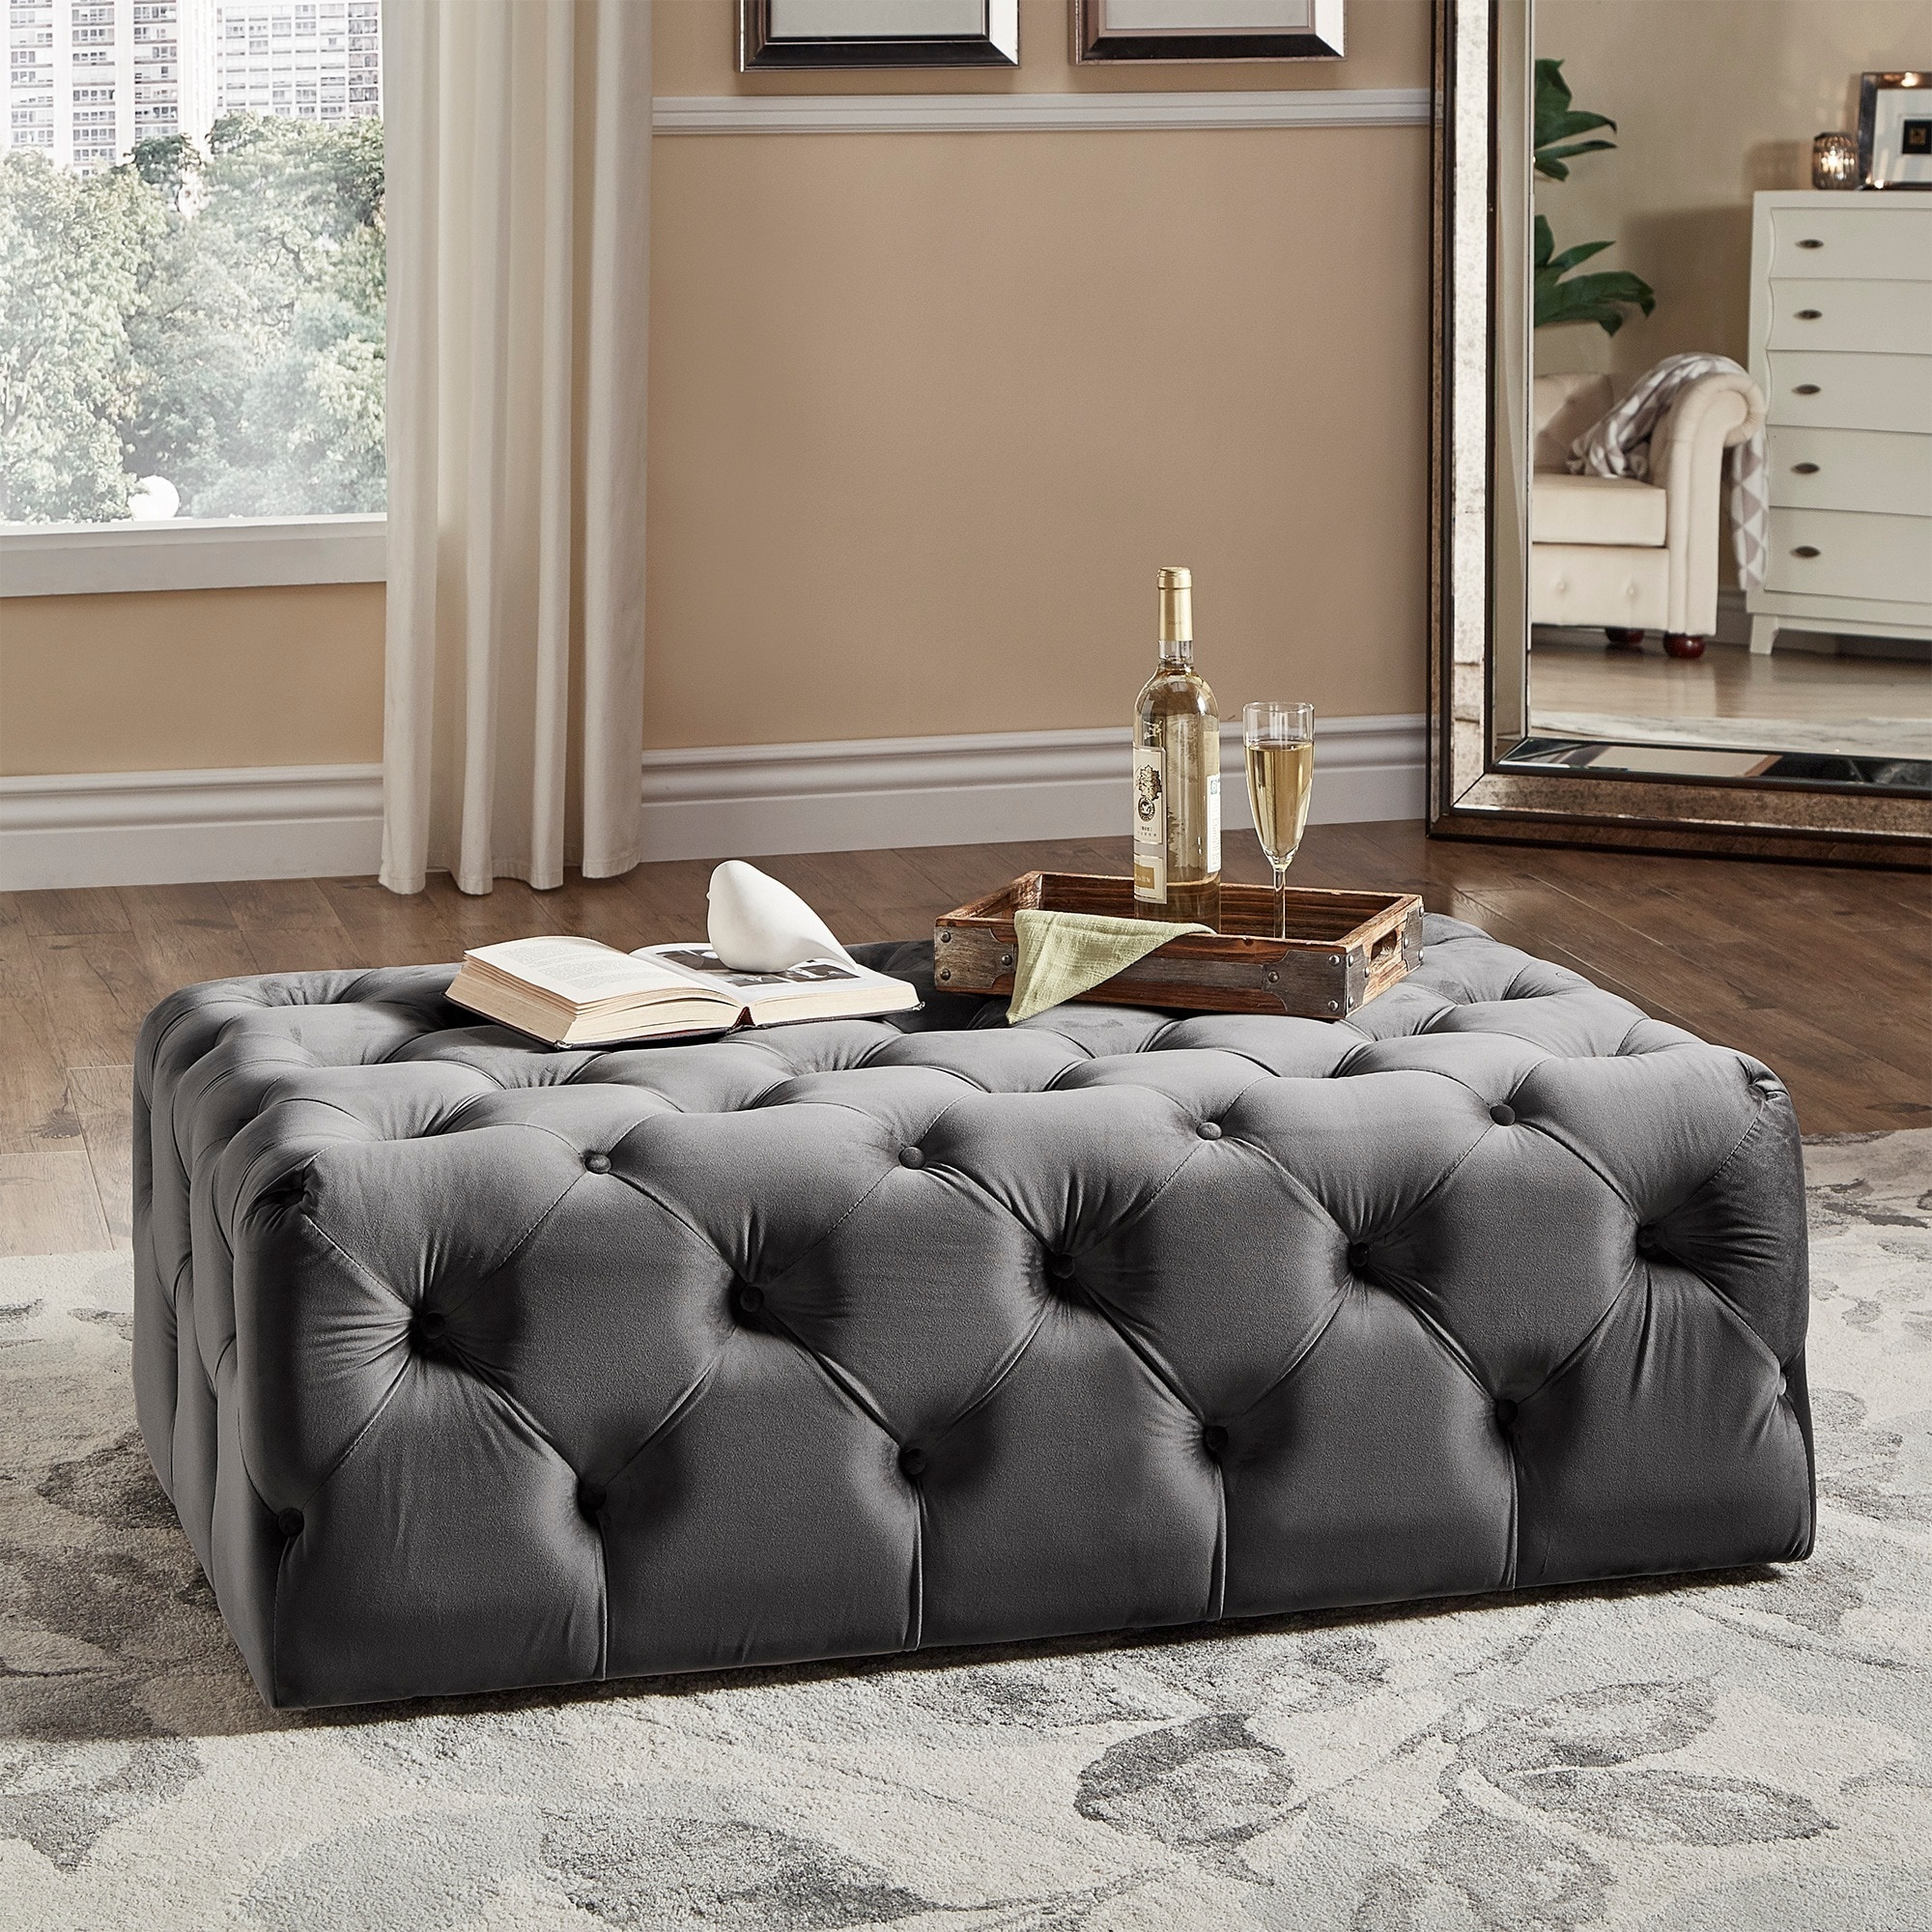 Knightsbridge Rectangular Linen Tufted Cocktail Ottoman with Casters by  iNSPIRE Q Artisan - Free Shipping Today - Overstock.com - 16740214